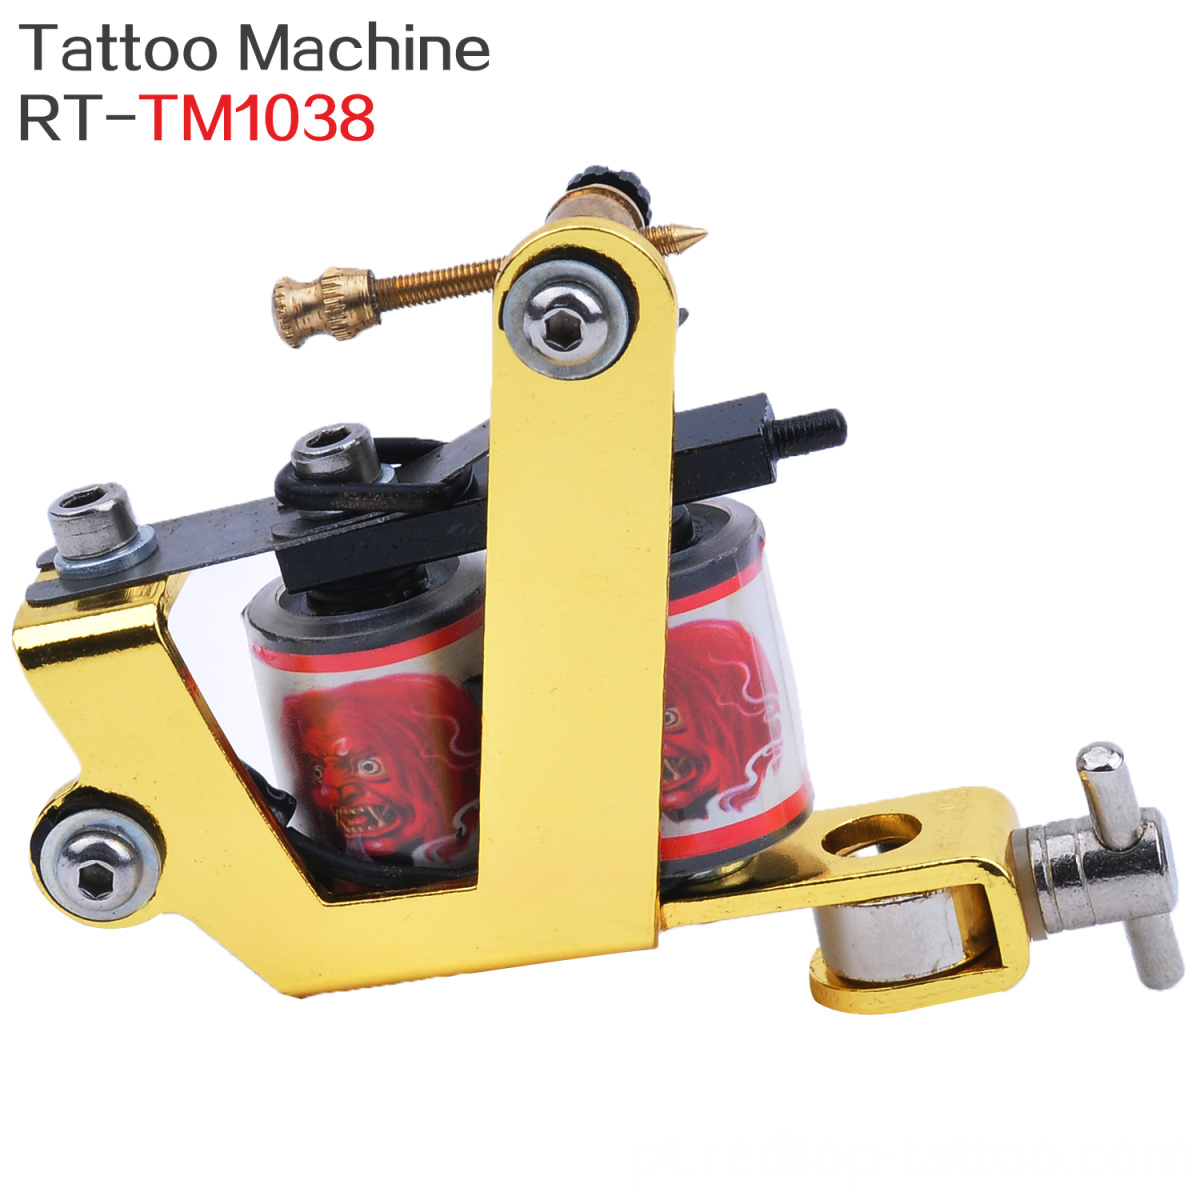 8COIL TATTOO MACHNE